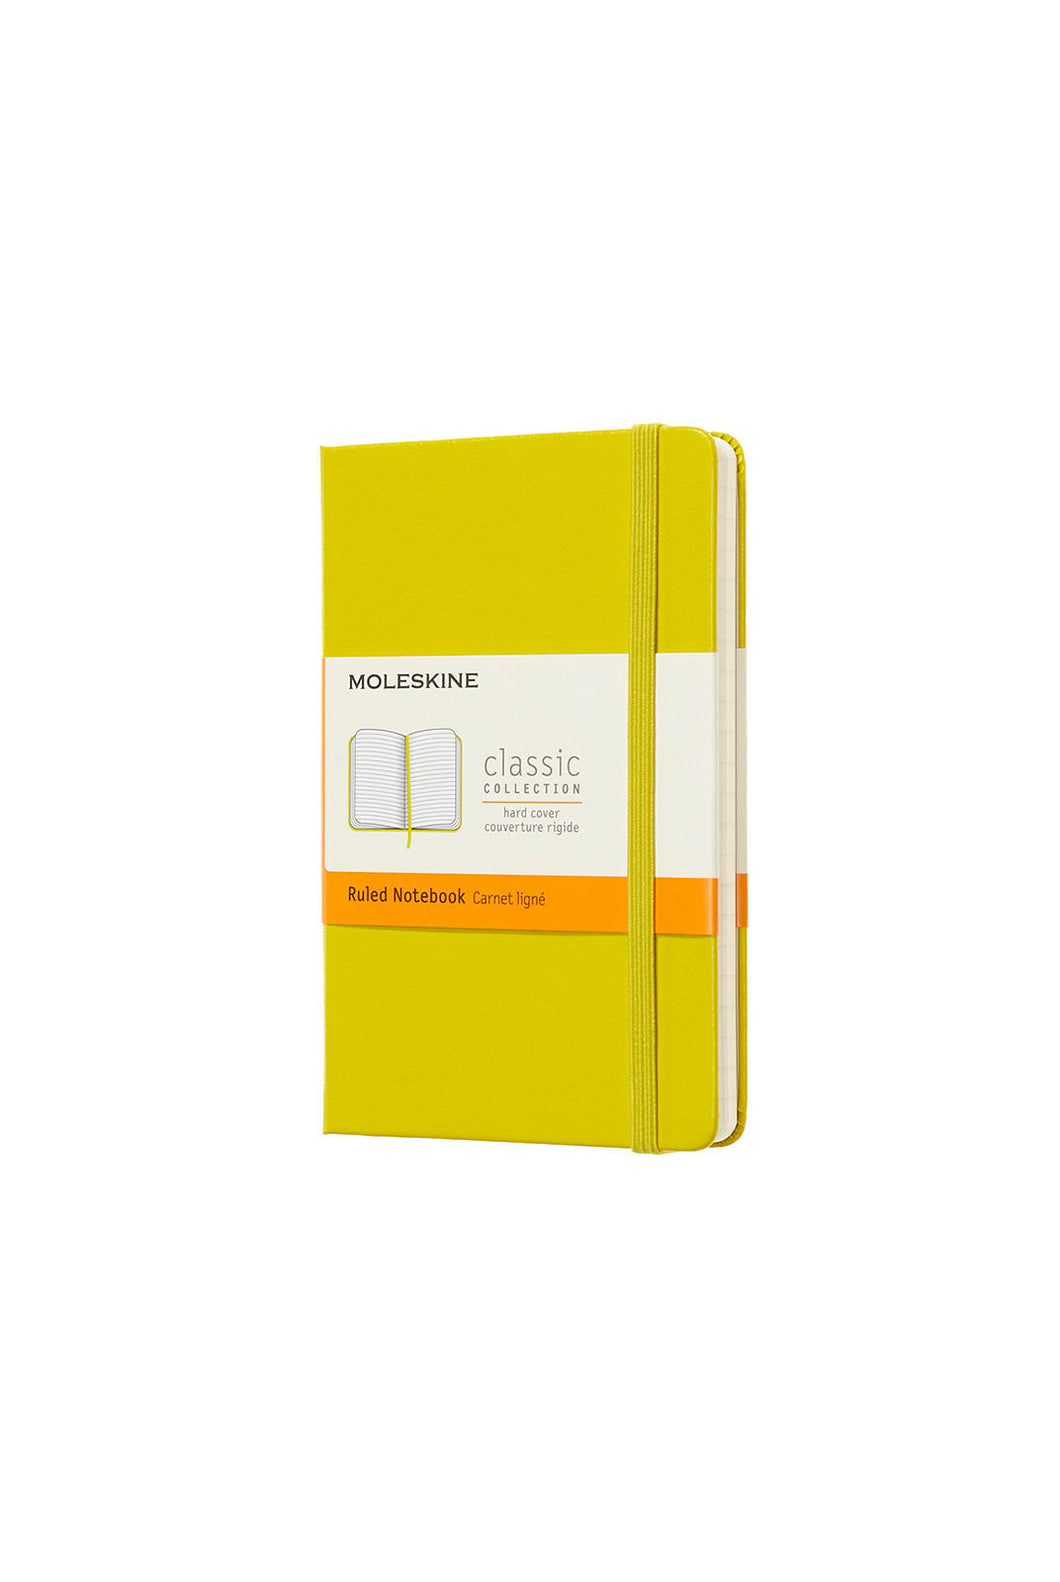 Moleskine - Classic Hard Cover Notebook - Ruled - Pocket (9x14cm) - Dandelion Yellow